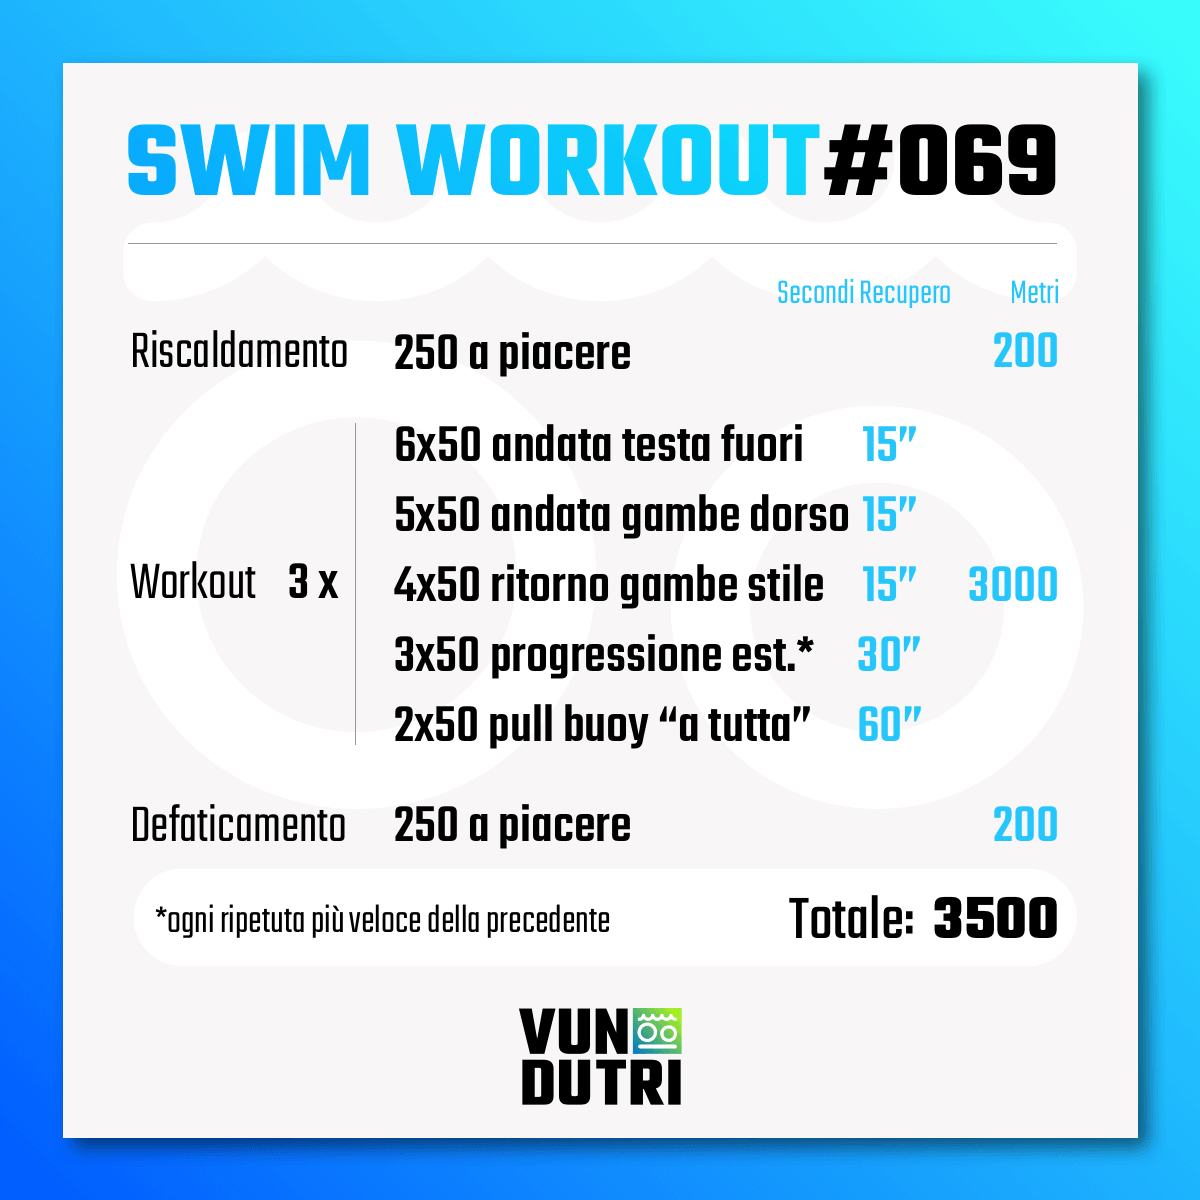 Swim workout 069